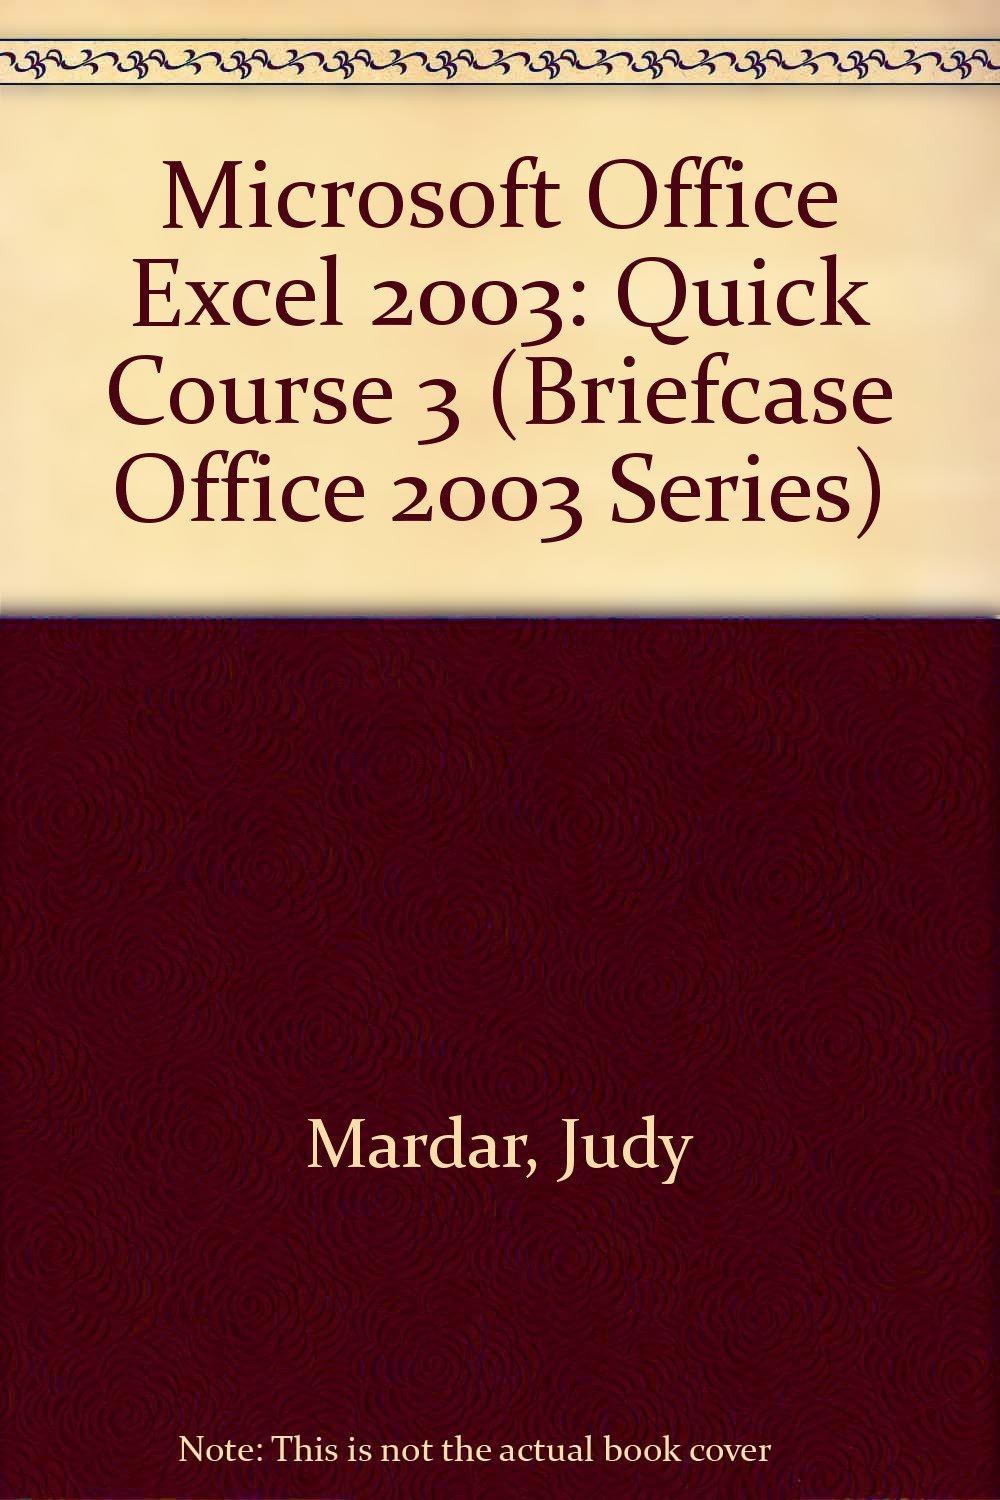 Download Microsoft Office Excel 2003: Quick Course 3 (Briefcase Office 2003 Series) ebook